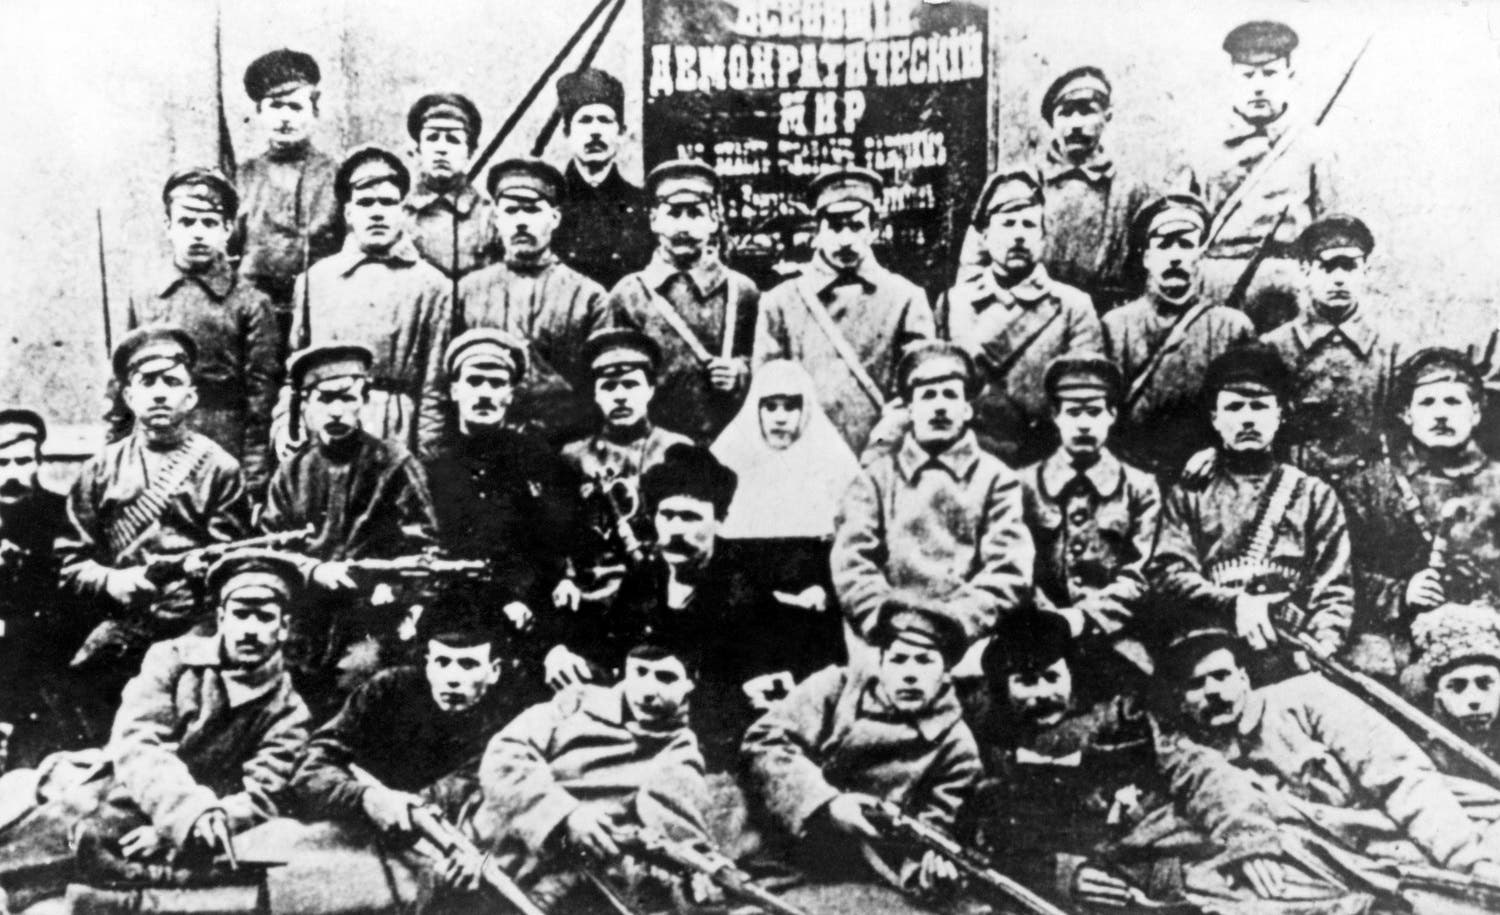 A picture taken in october 1917 shows a group of Bolshevik soldiers posing in Petrograd during the October Revolution. AFP PHOTO PIGISTE / TASS / AFP